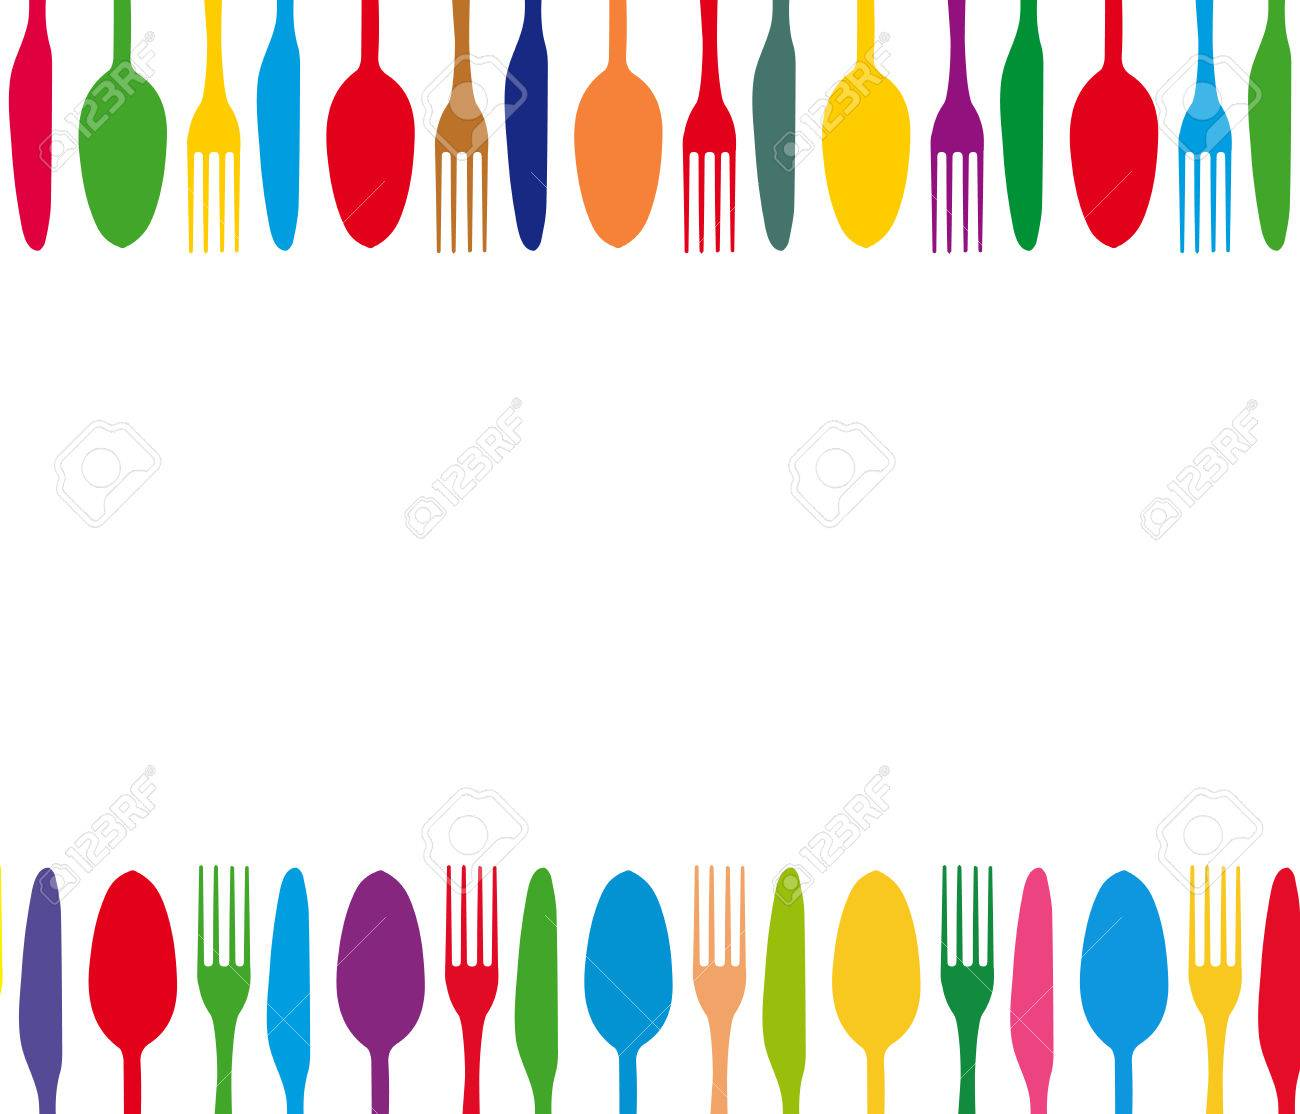 Cutlery Color Background Menu With Cutlery Vector Illustration 1300x1114